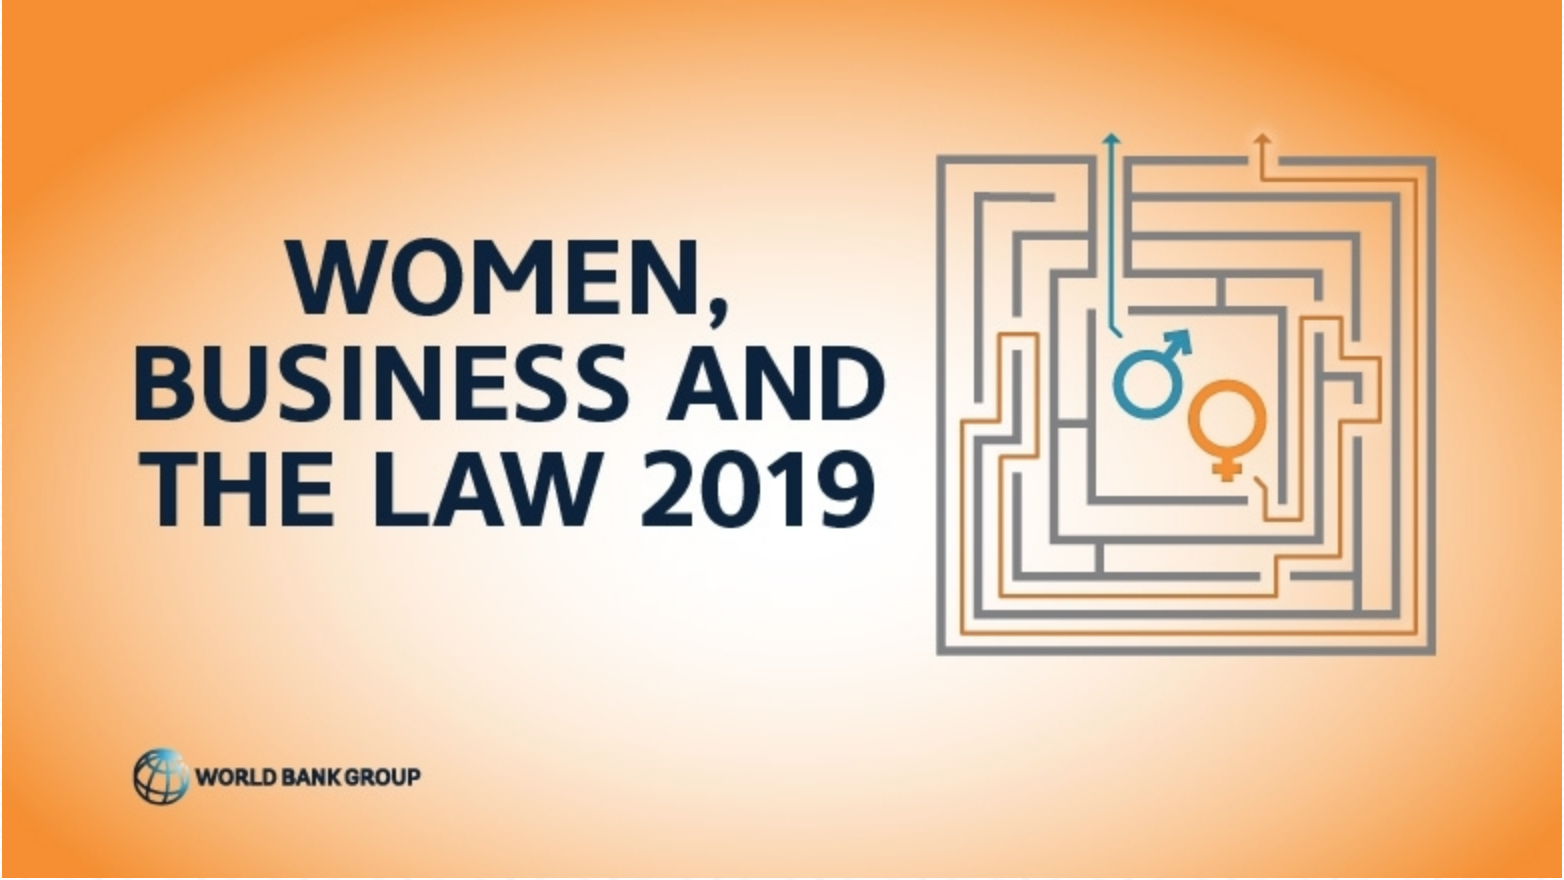 World Bank publishes the Women, Business and the Law Report 2019: A Decade of Reform